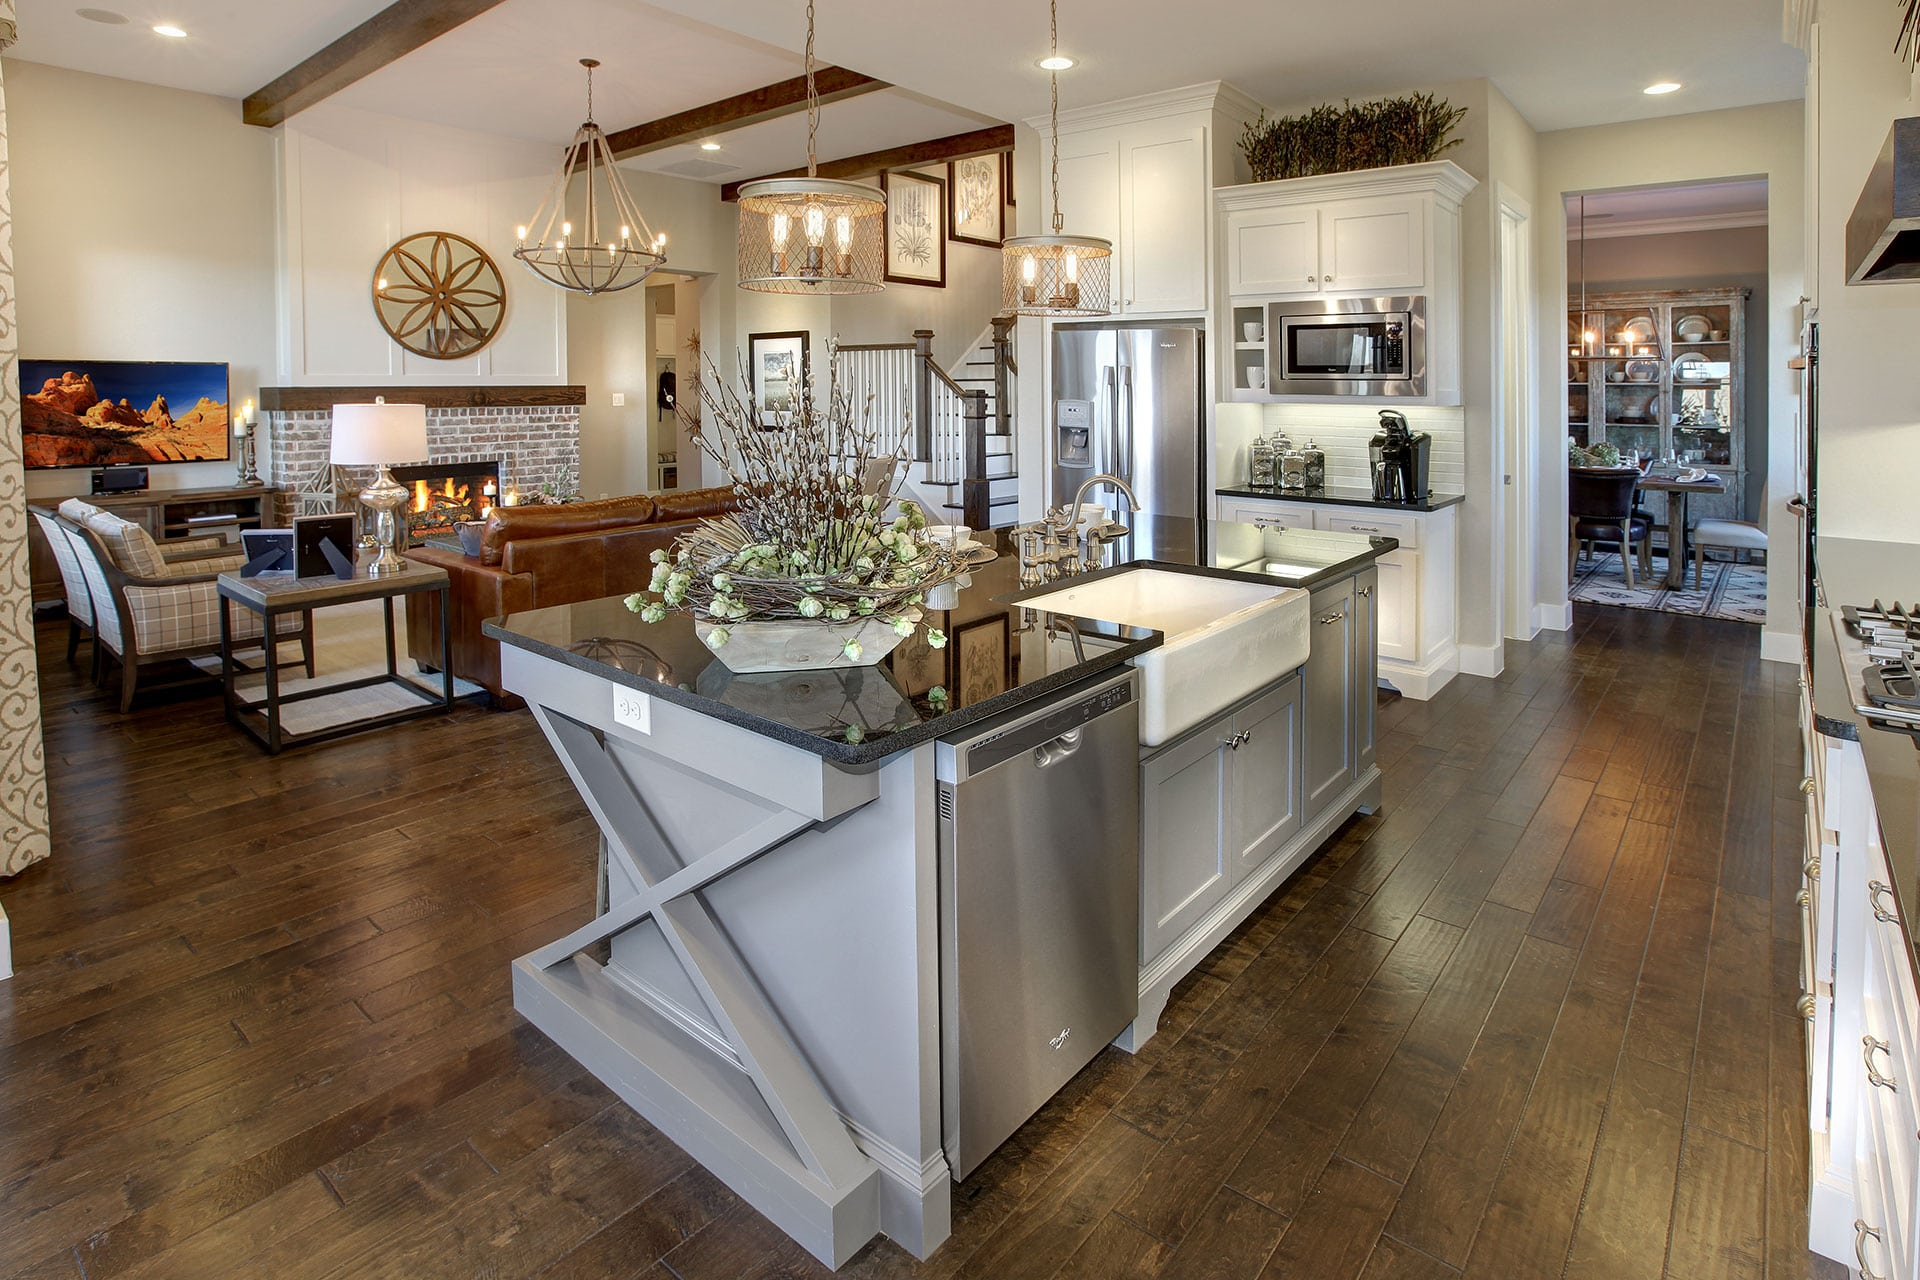 Drees model homes dallas home decor for Model home furniture for sale atlanta ga